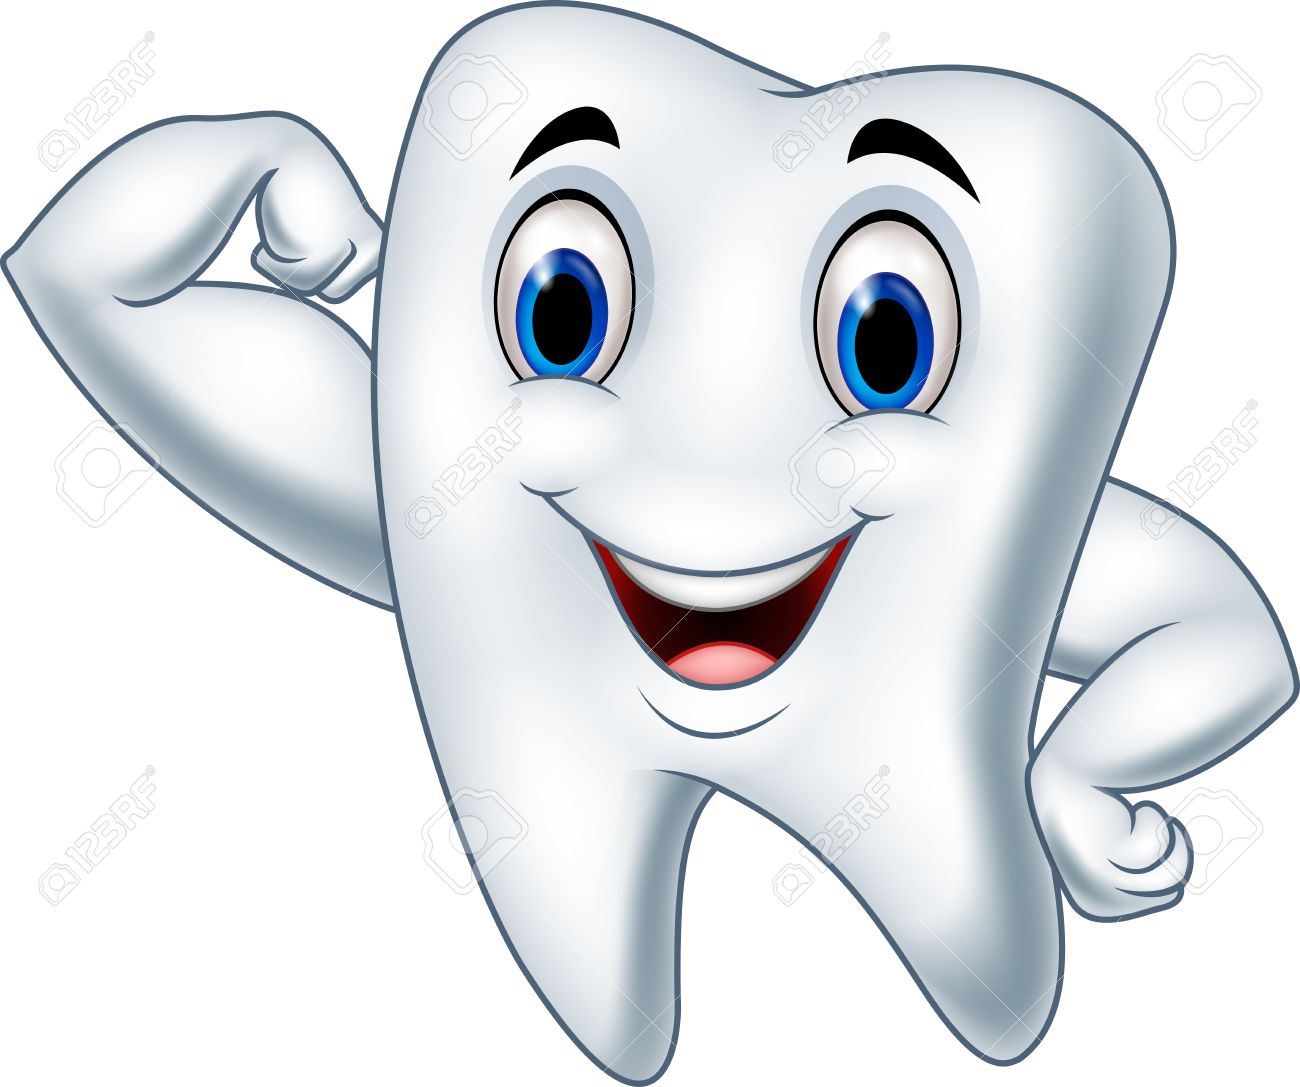 vector illustration of cartoon strong tooth character royalty free